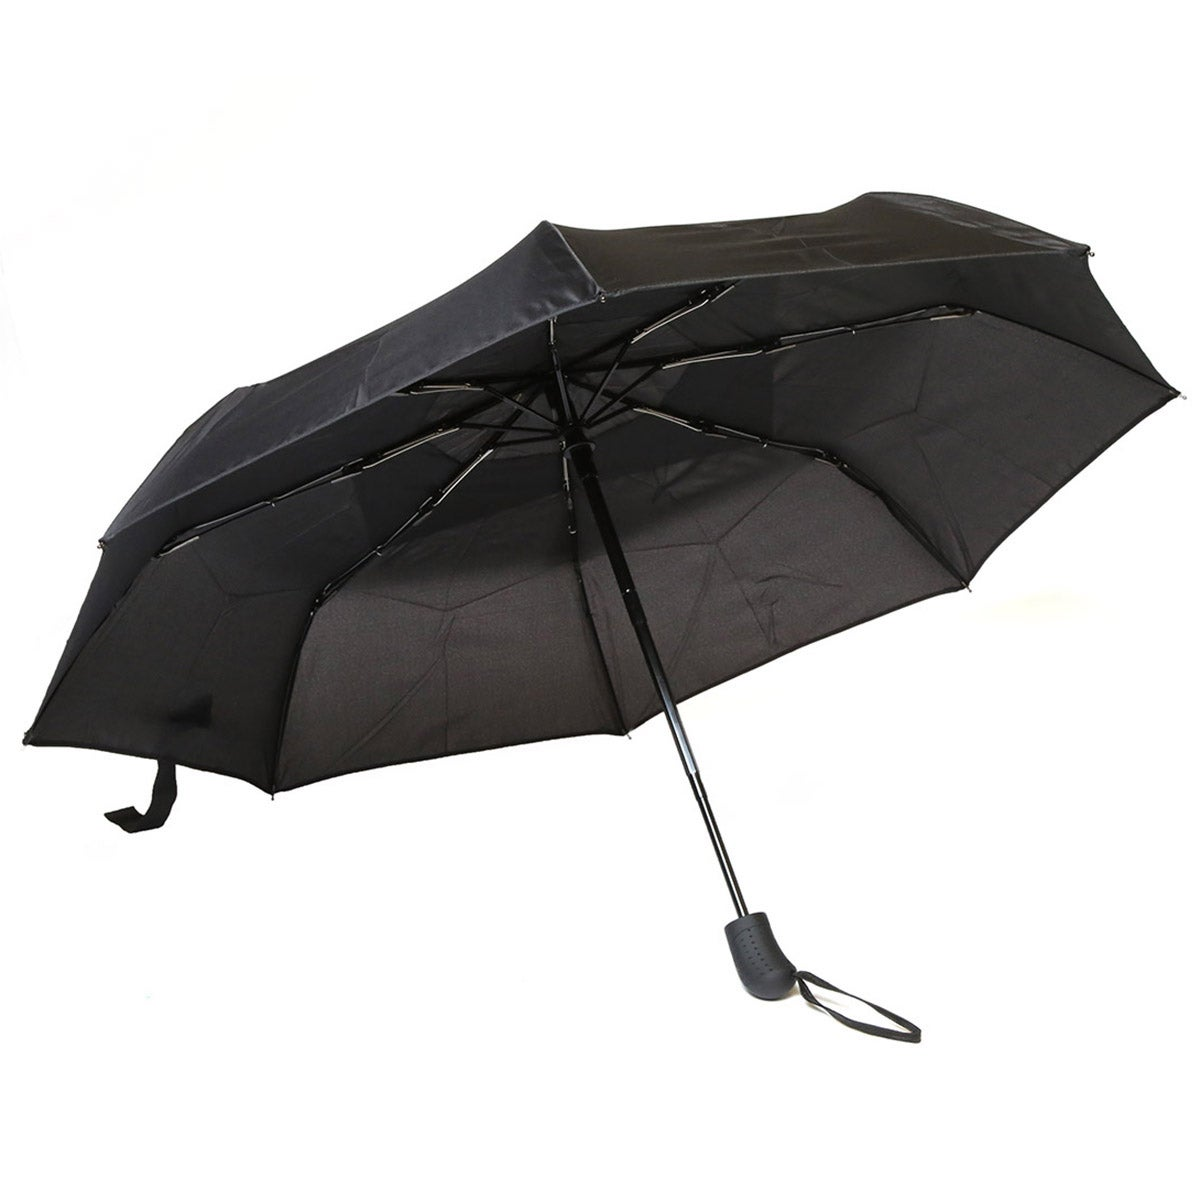 Roots73 black telescopic vented umbrella